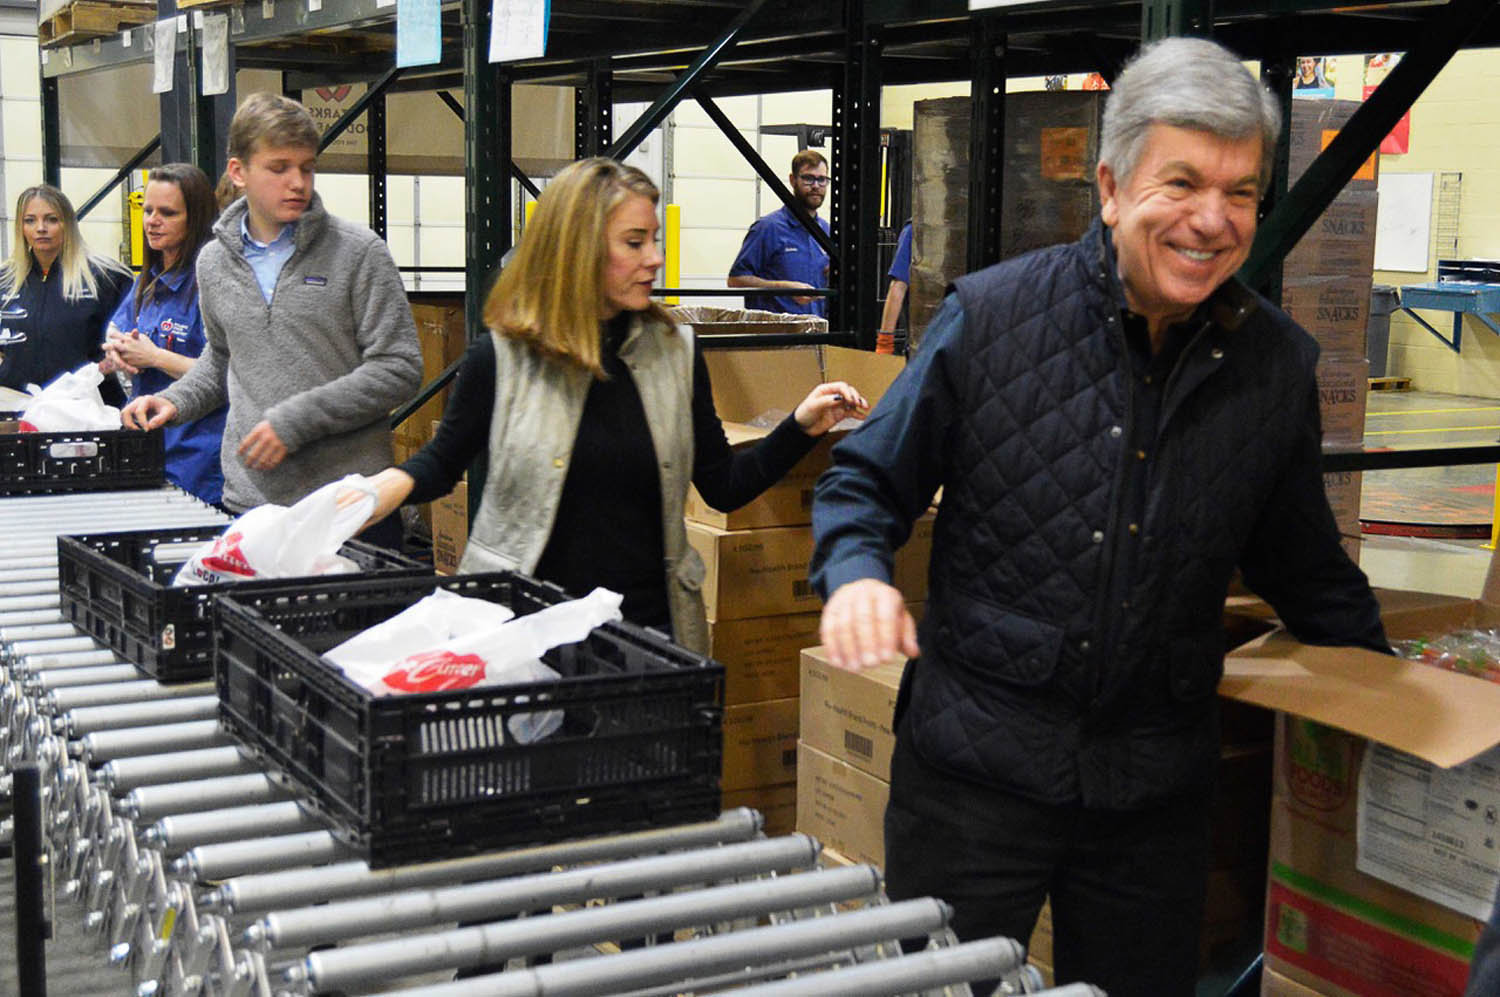 VOLUNTEER SENATOR